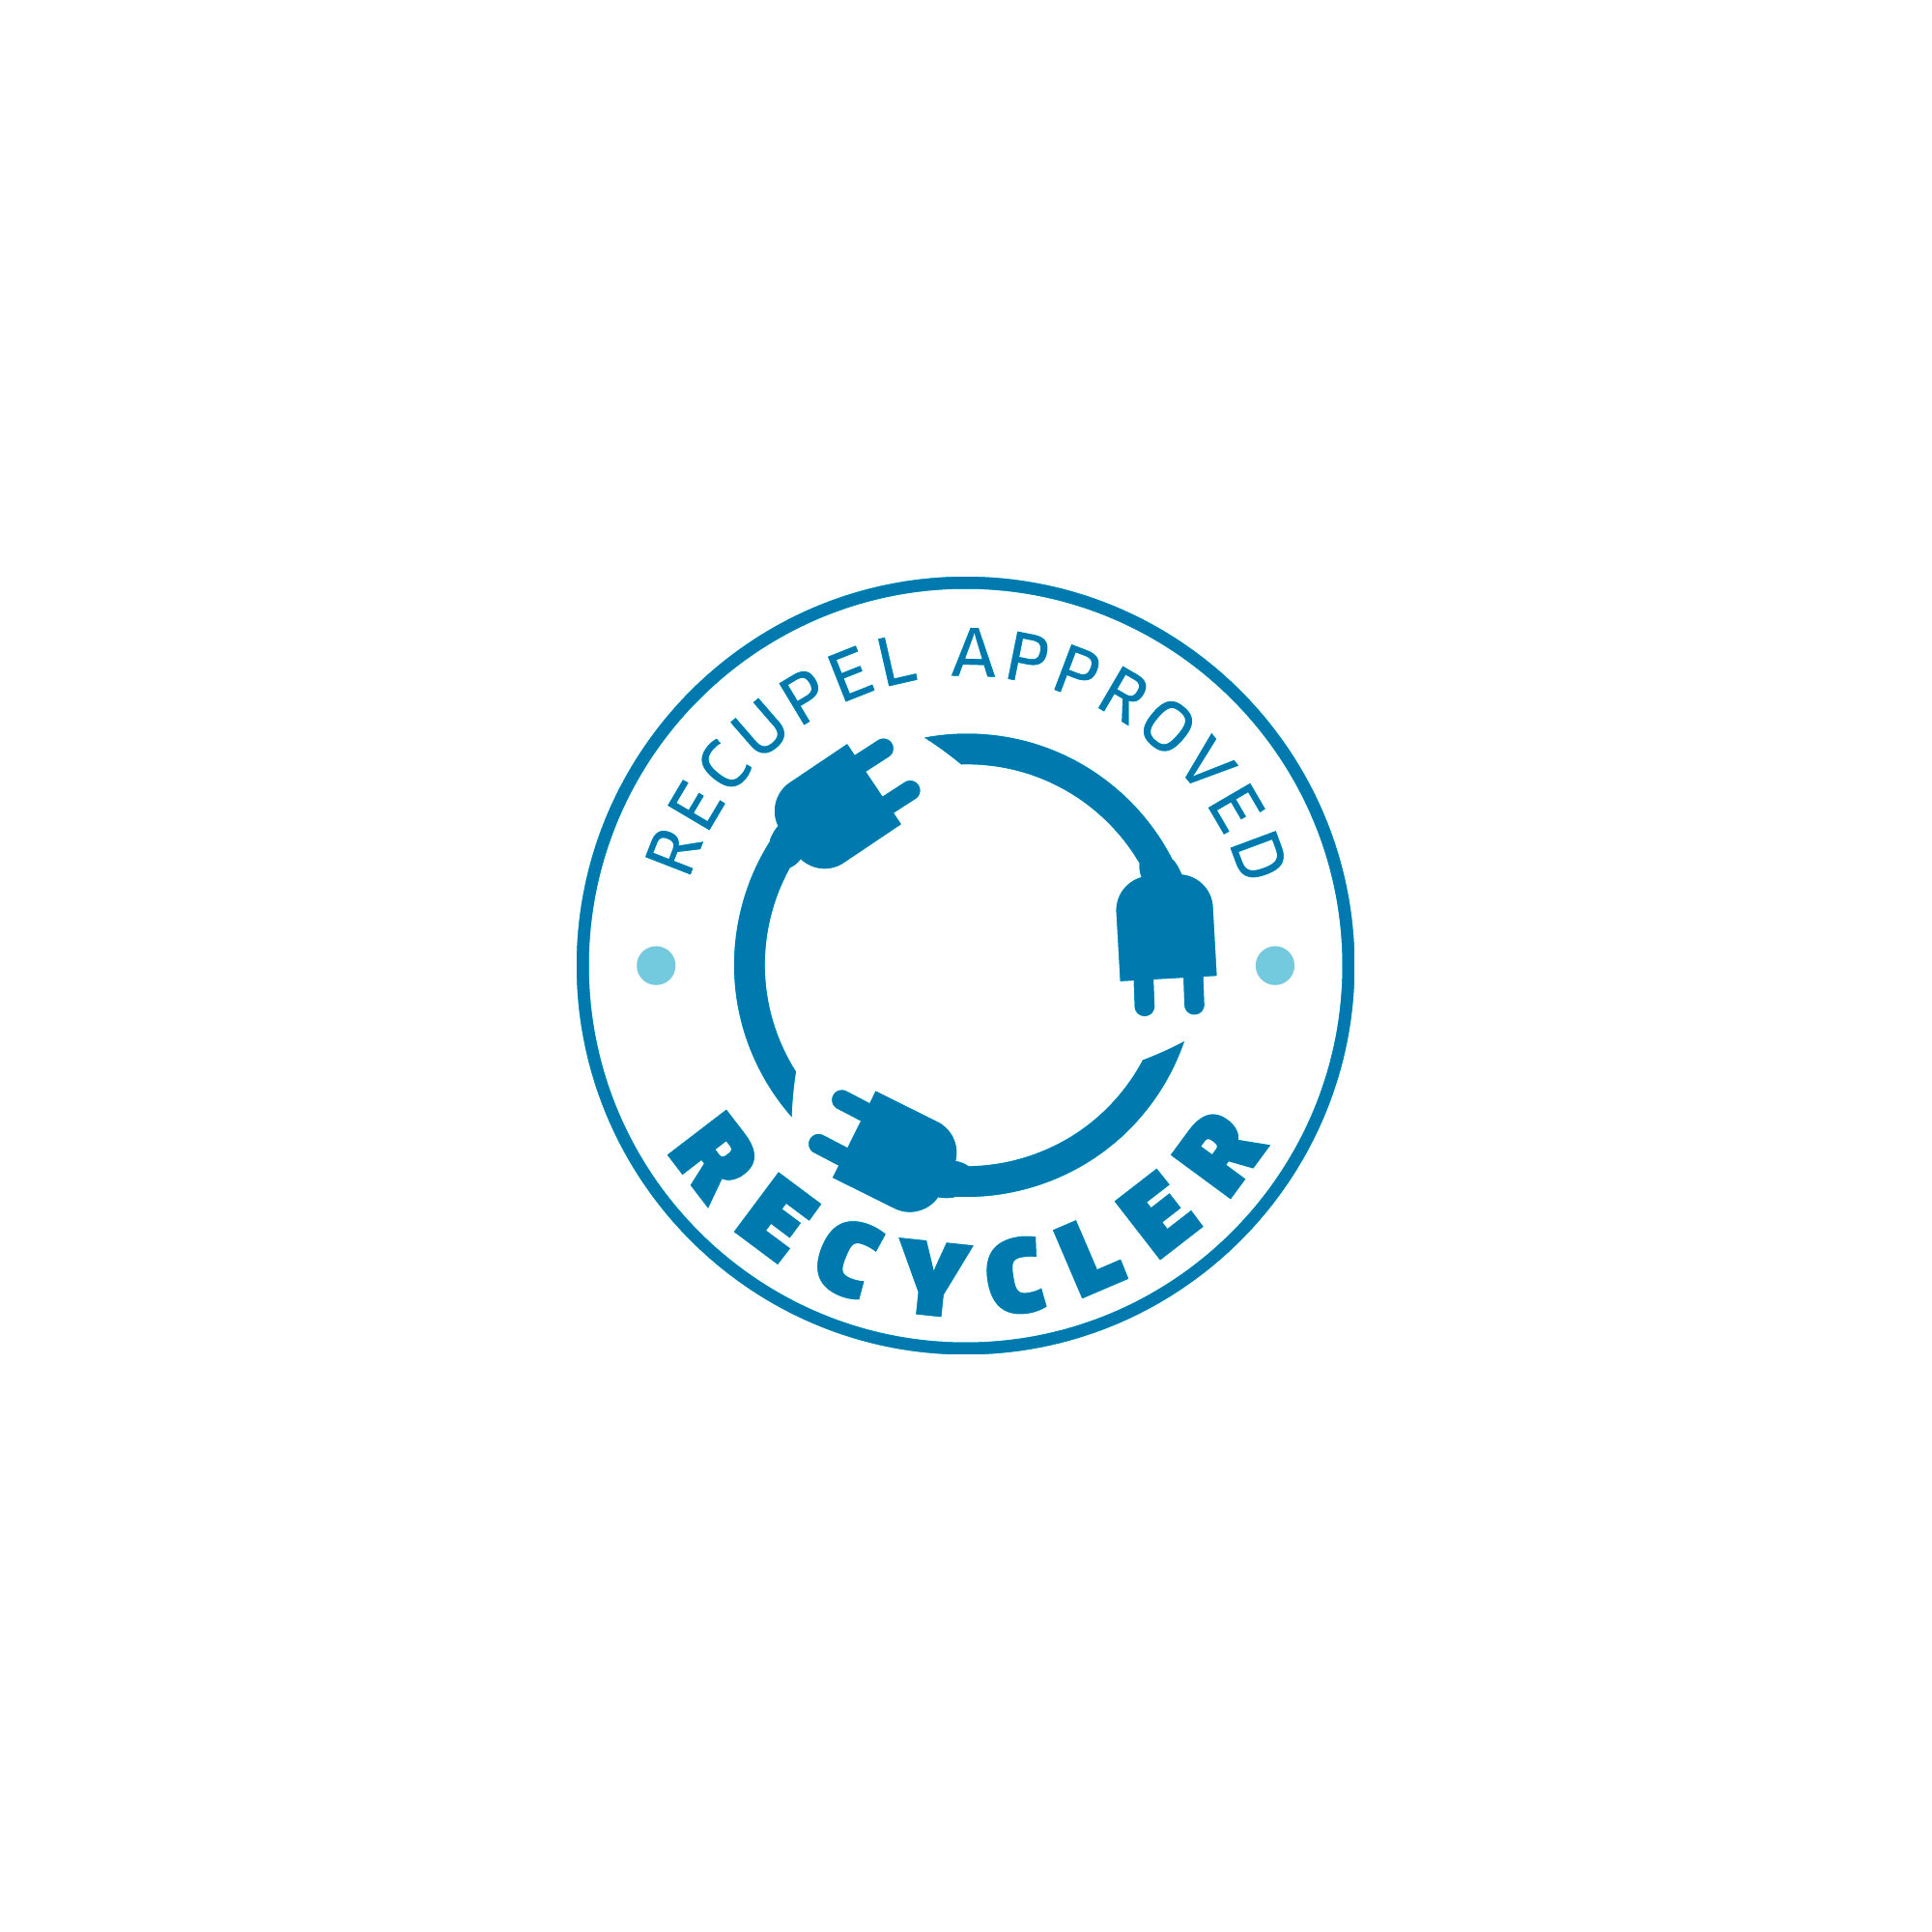 Become A Recupel Approved Recycler